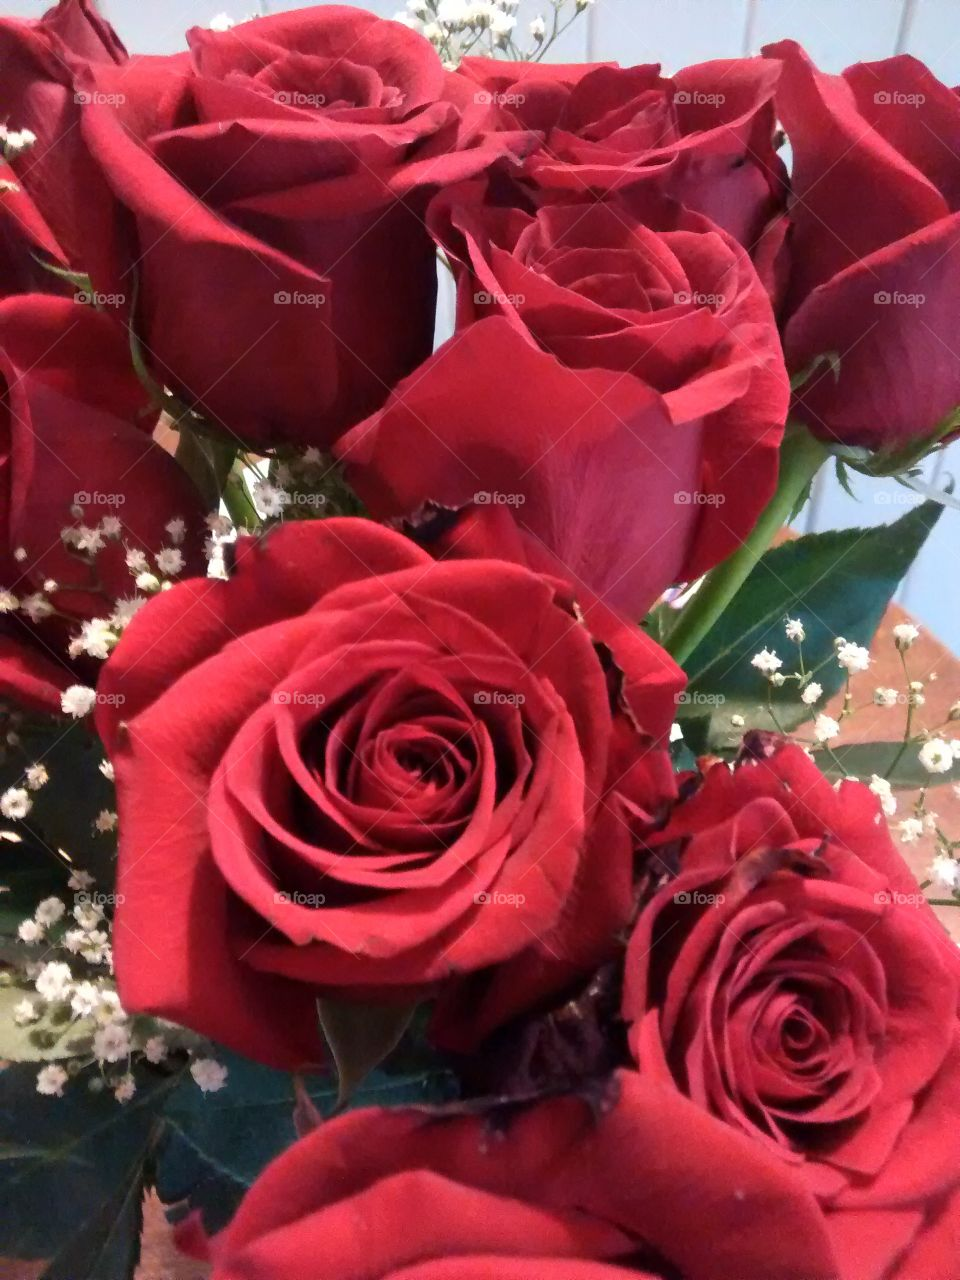 red roses for Mom. Red roses tell mom you love her on mother's day... or any other day! Works for boyfriends and husband too!